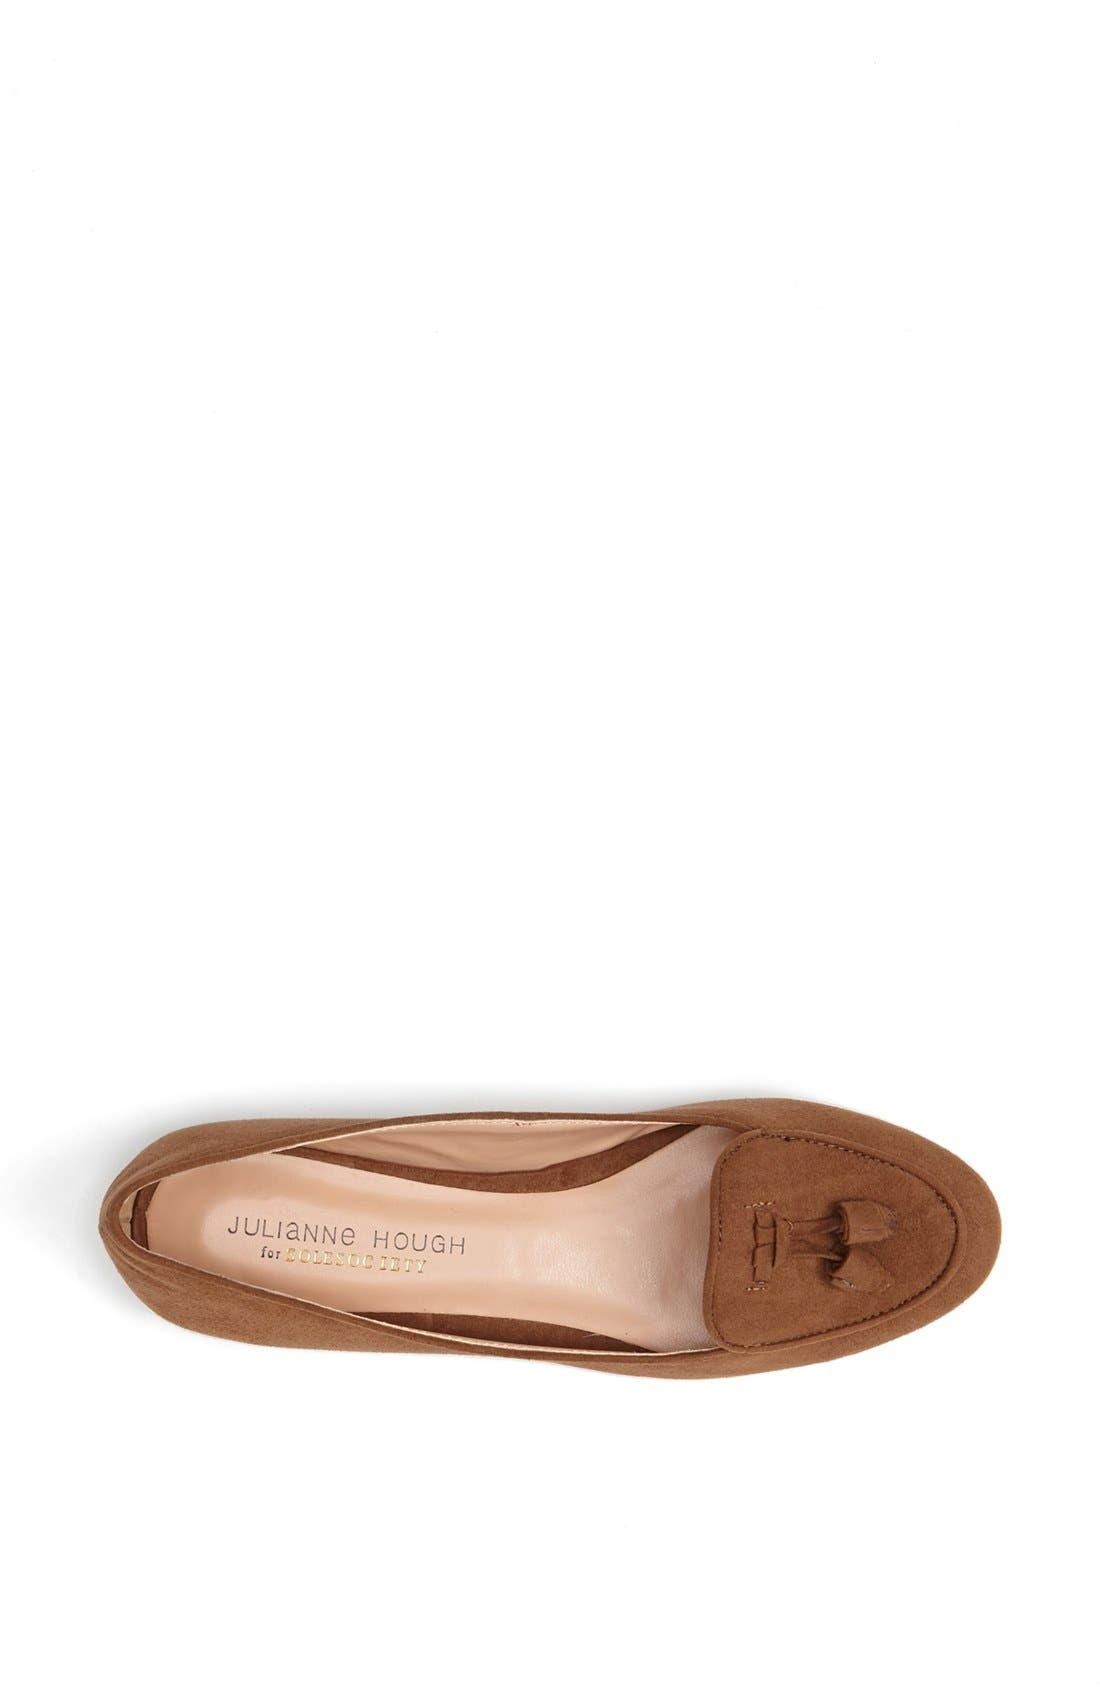 Alternate Image 3  - Julianne Hough for Sole Society 'Cambria' Smoking Slipper Flat